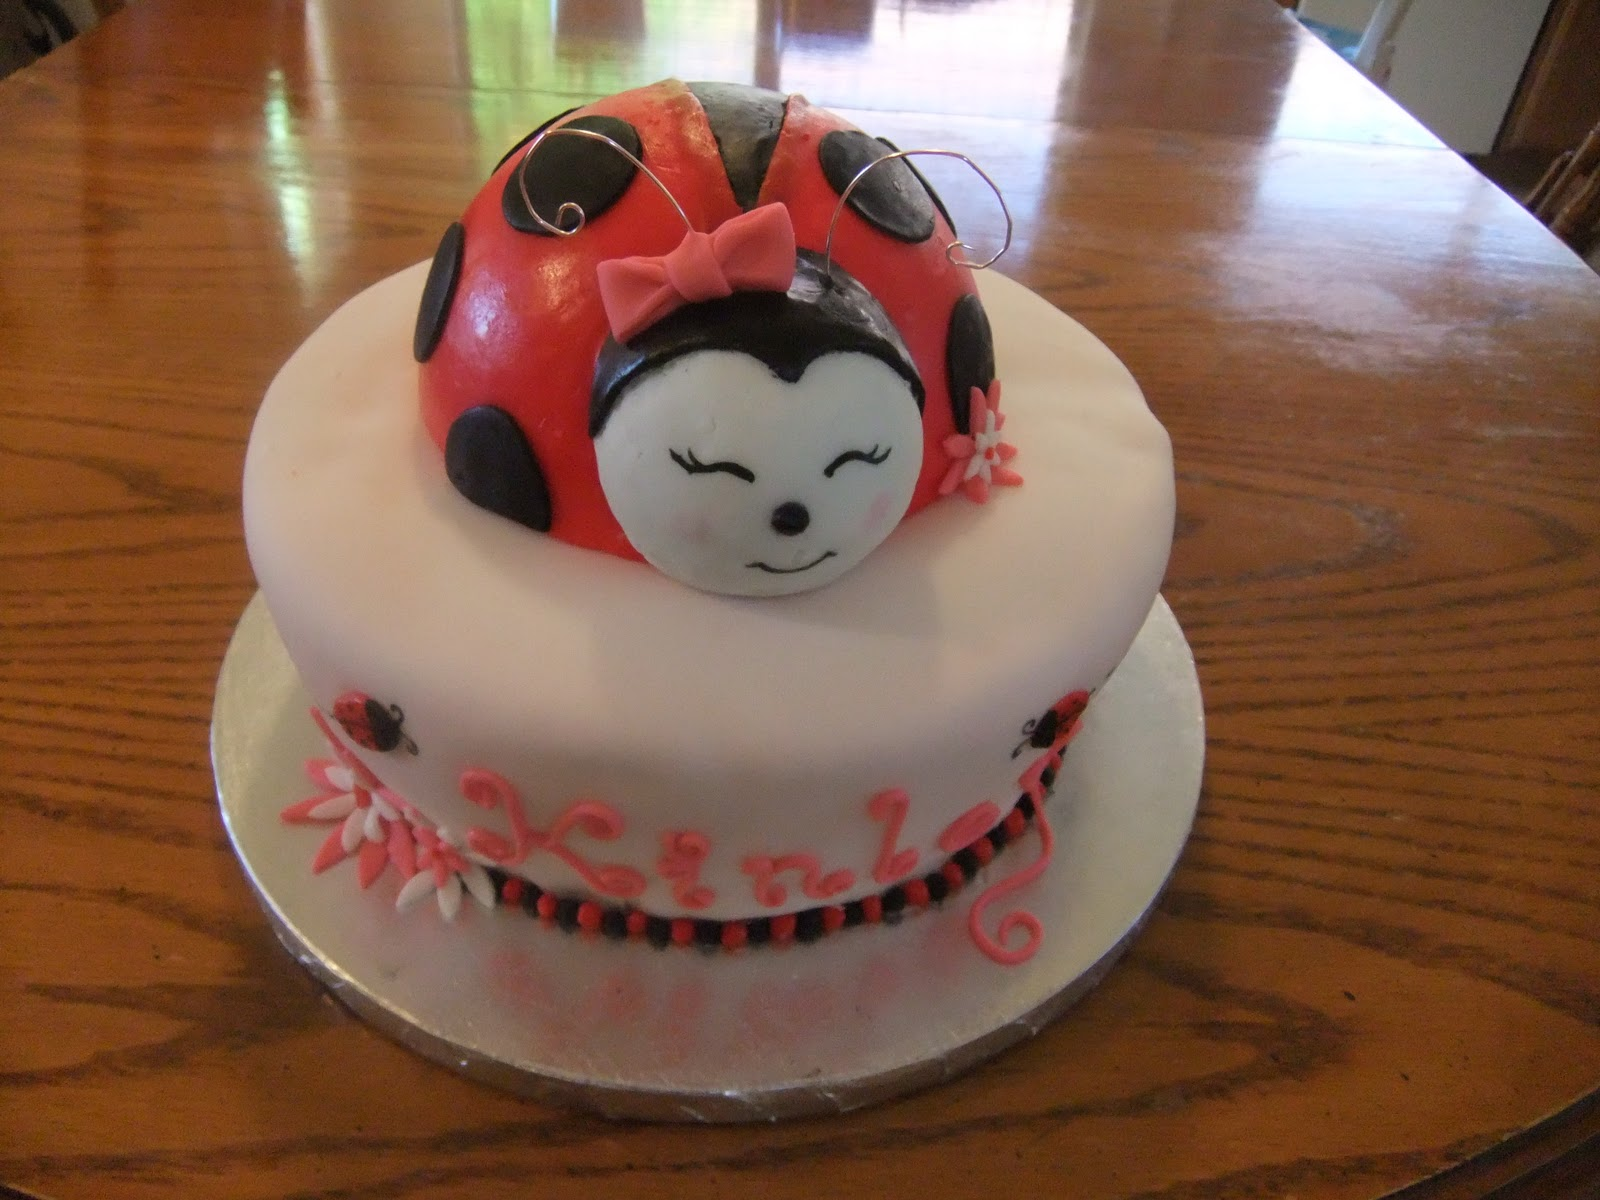 For The Name I Used My Clay Extruder And I Put Ladybugs And A Few Flowers  Around The Cake. The Mother Of Honor Loved The Cake So Iu0027m Glad How The Cake  ...